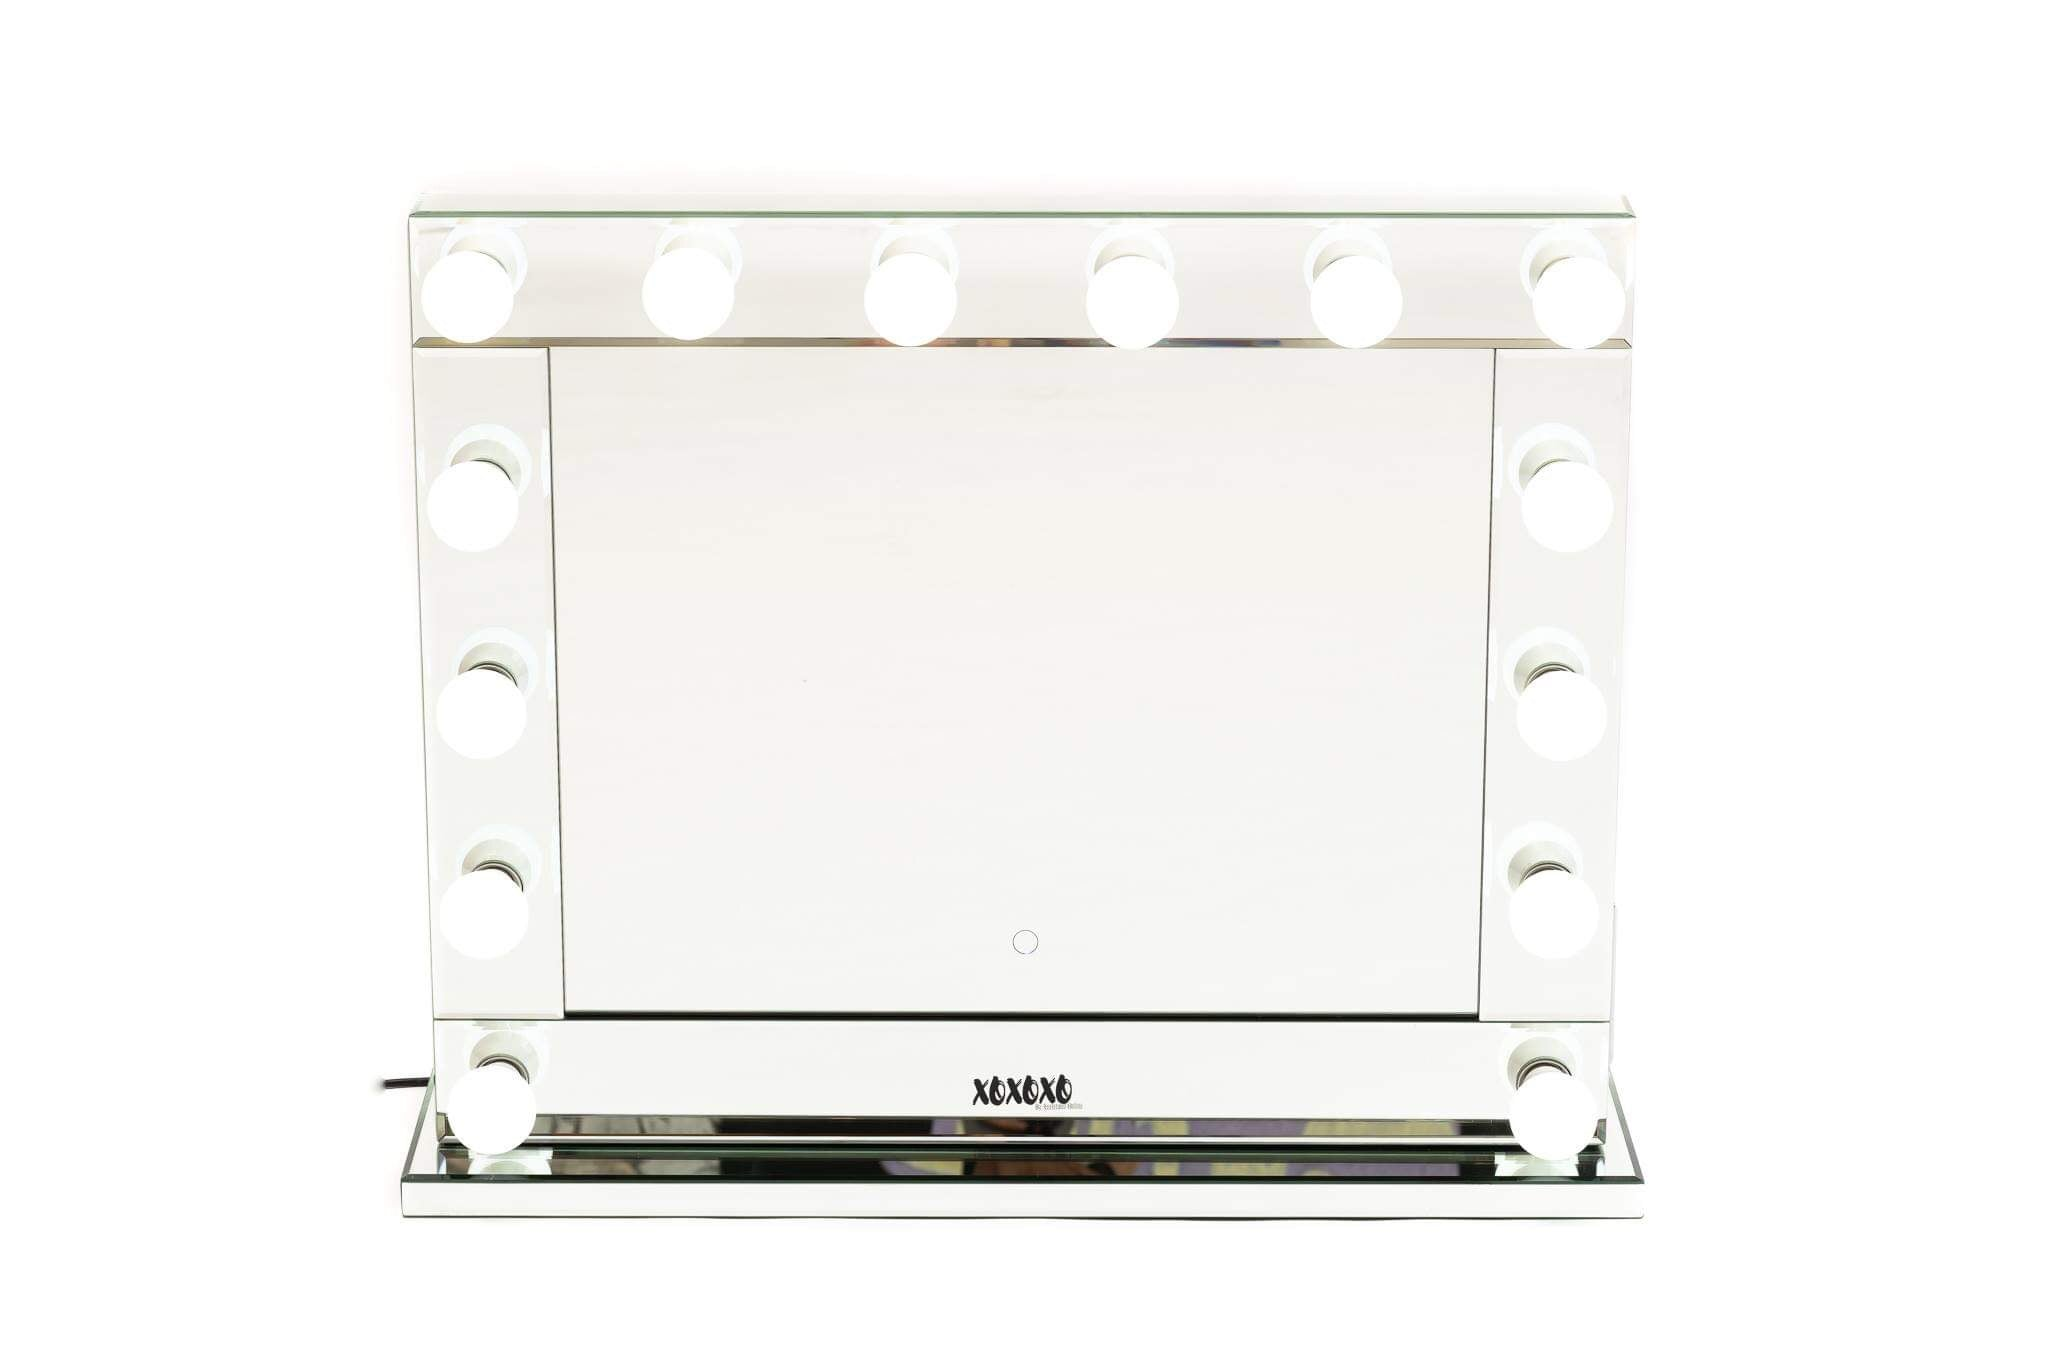 Hollywood Mirror Extra Large With Dimmer & Touch Sensor/Power- LIMITED STOCK